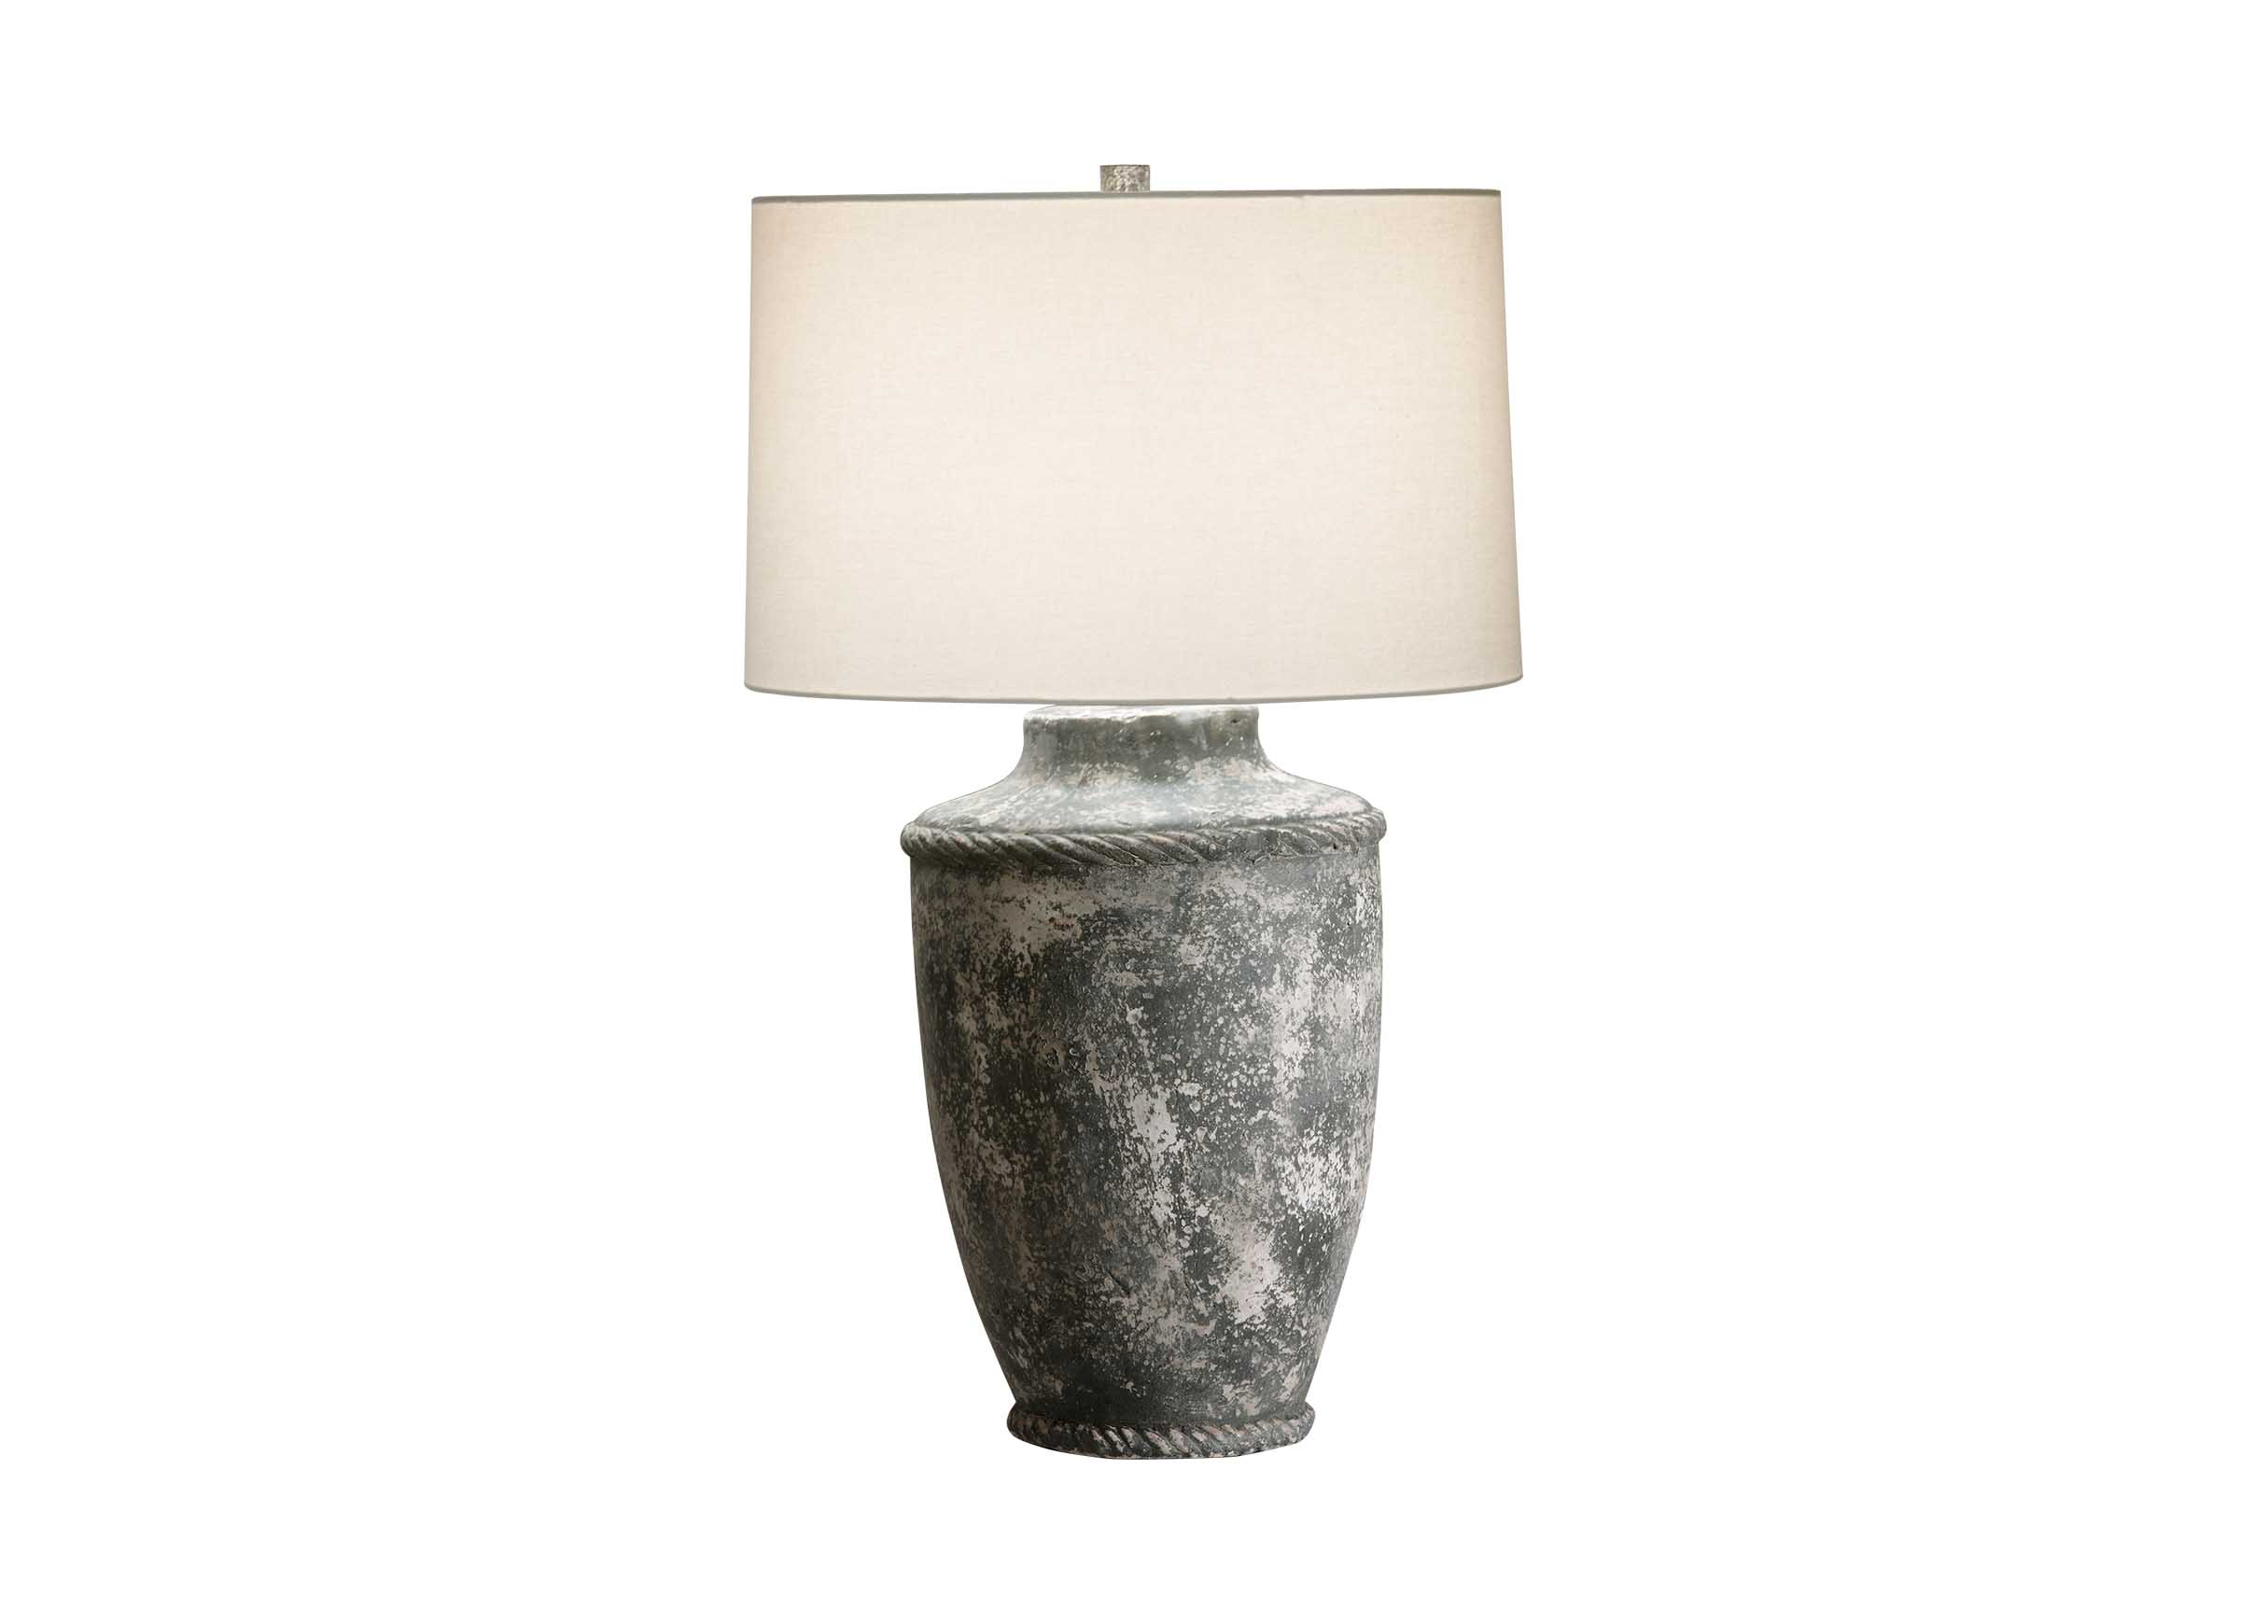 Palestro Table Lamp | TABLE LAMPS | Ethan Allen